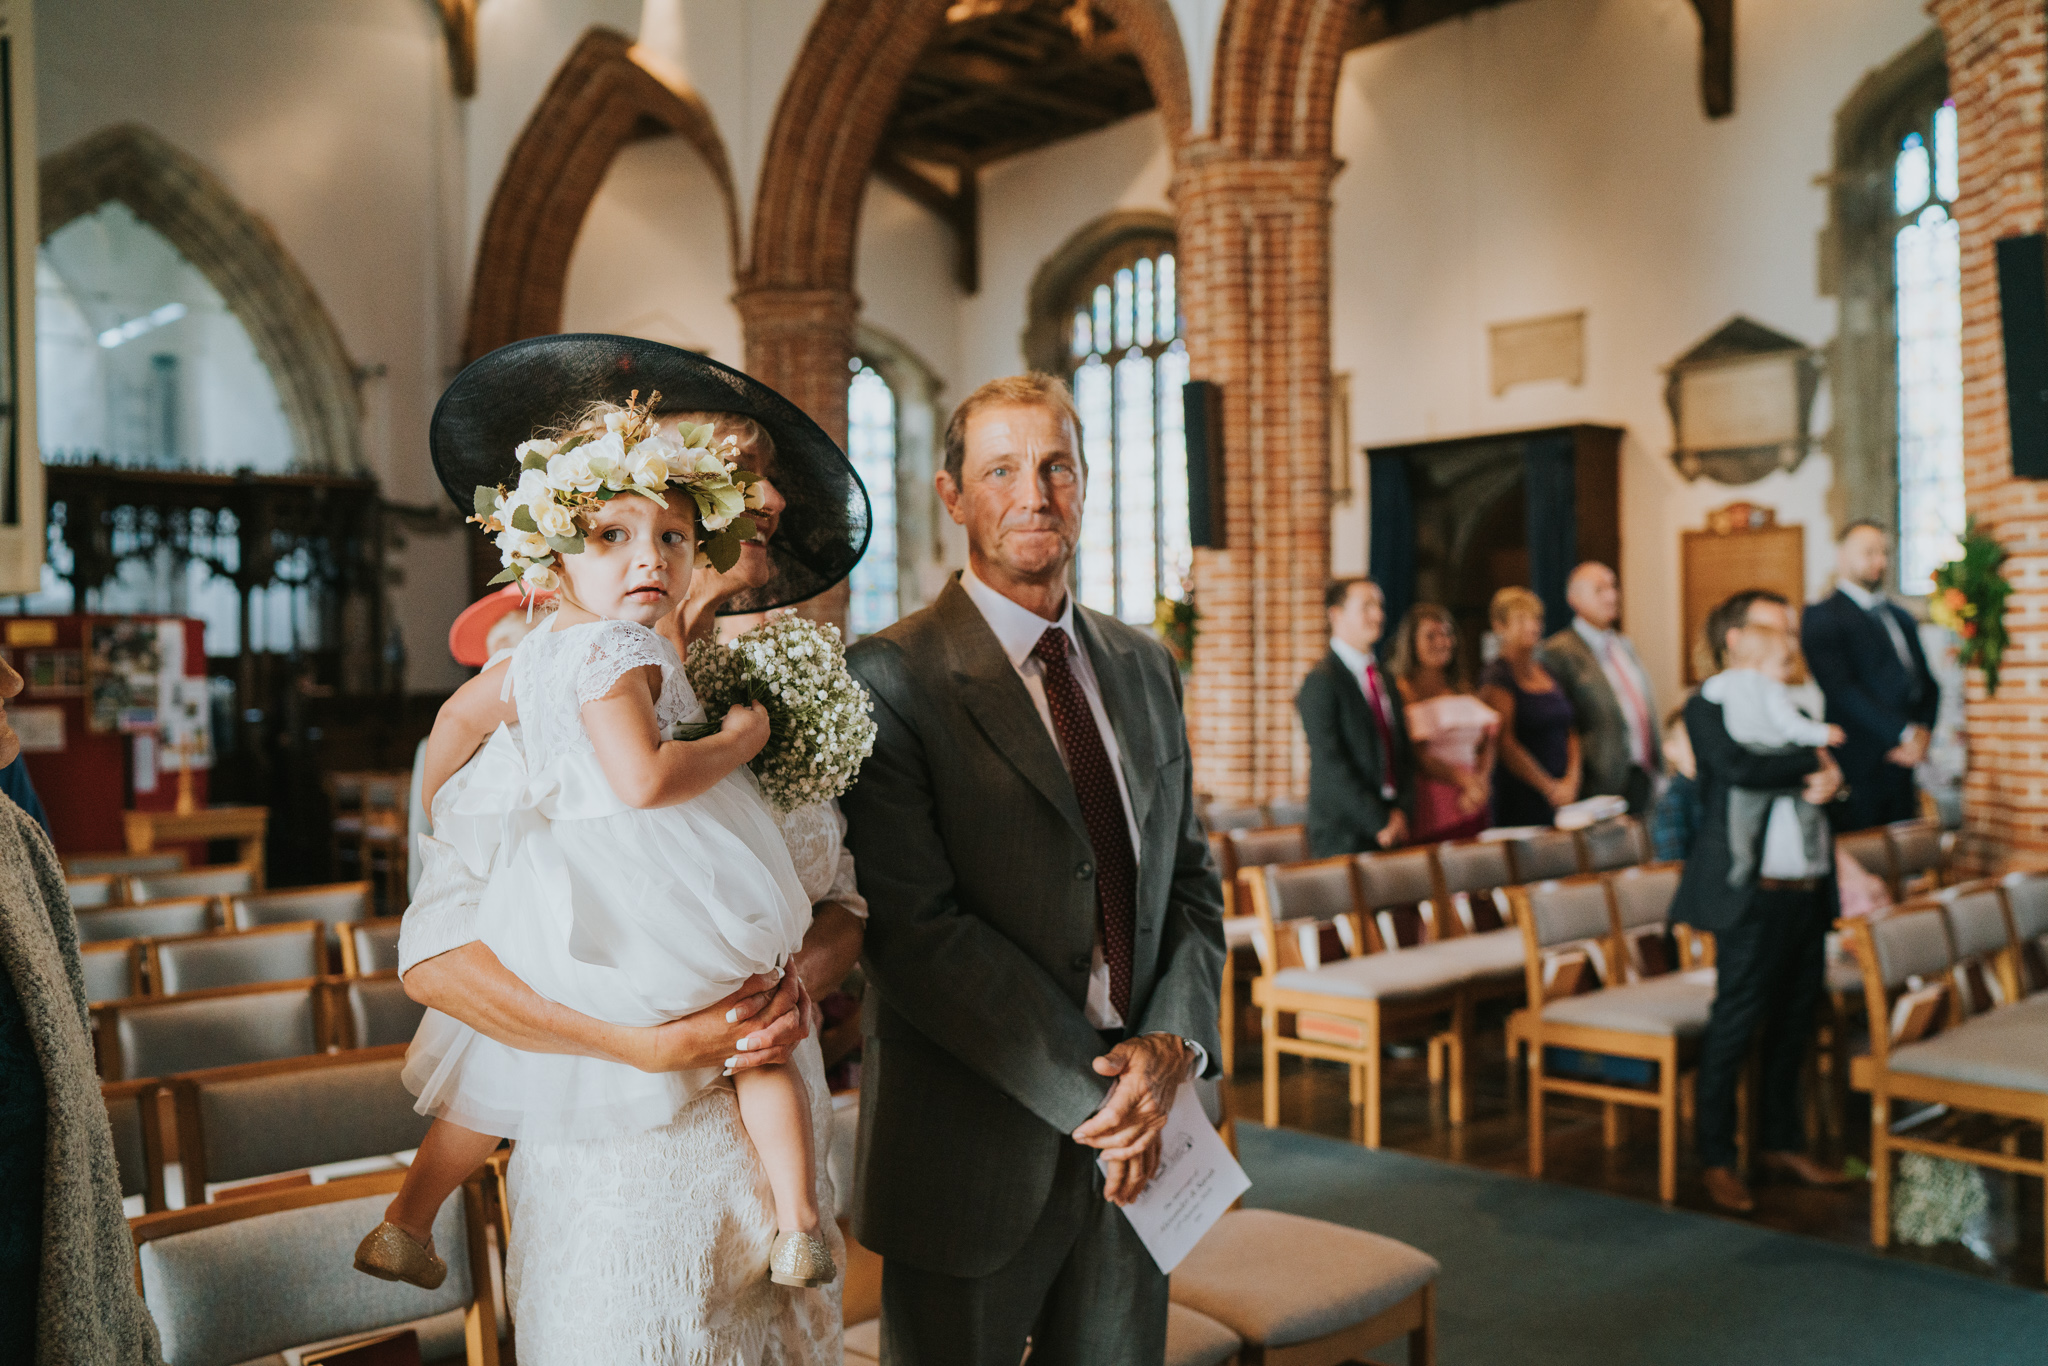 intimate-english-church-wedding-sarah-alex-colchester-essex-grace-elizabeth-colchester-essex-alternative-wedding-lifestyle-photographer-essex-suffolk-norfolk-devon (32 of 92).jpg